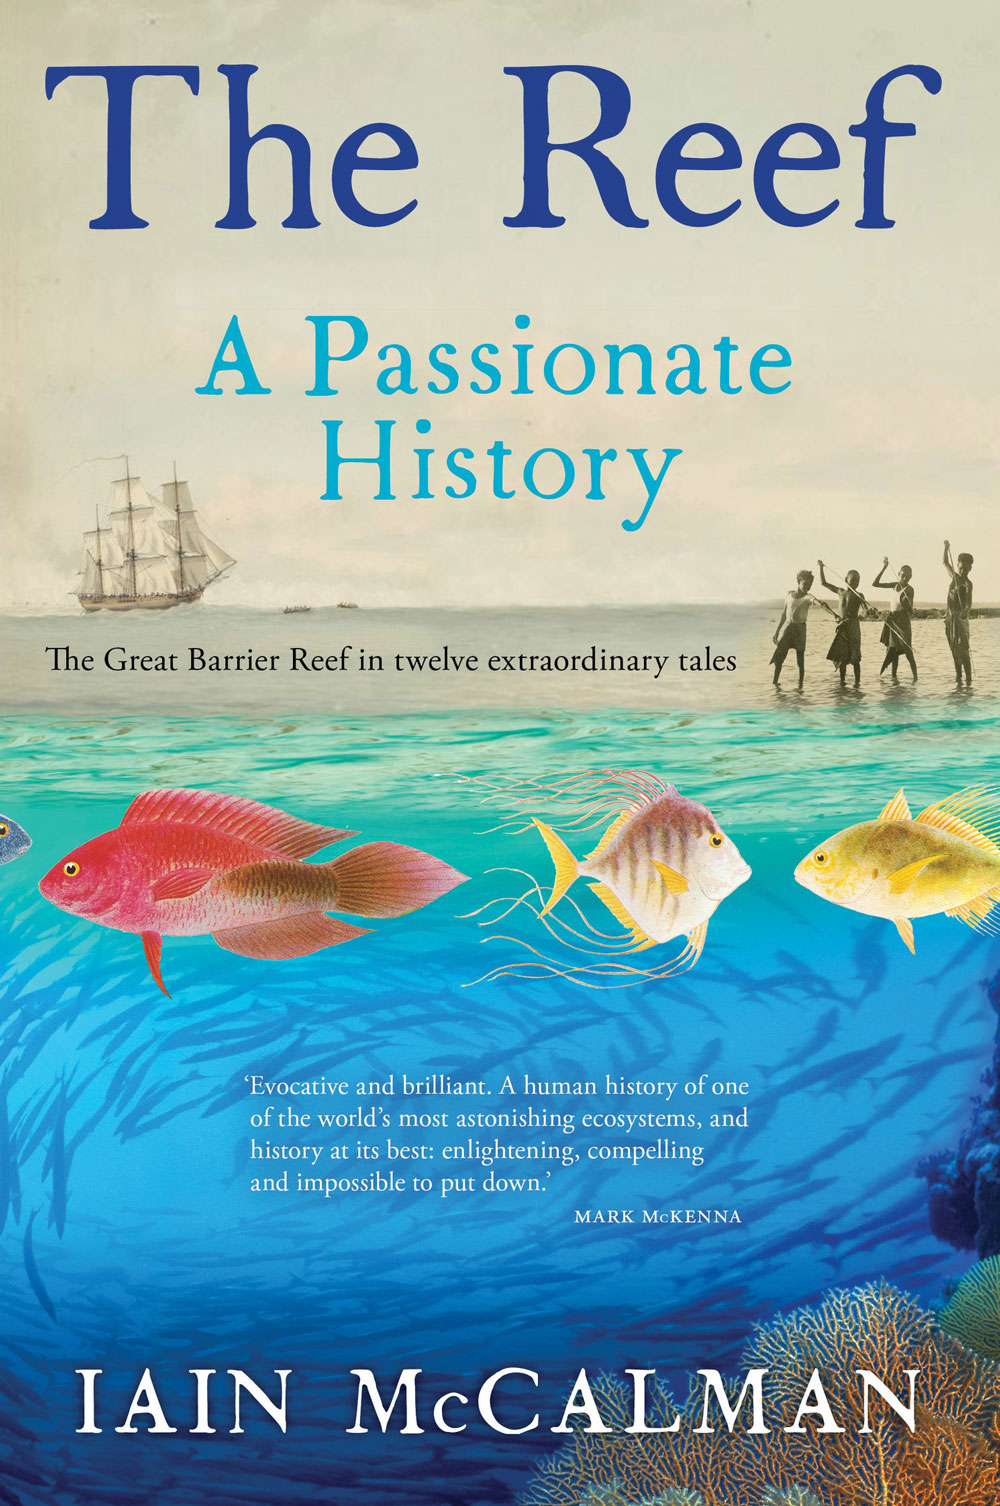 The Reef: A Passionate History by Iain McCalman